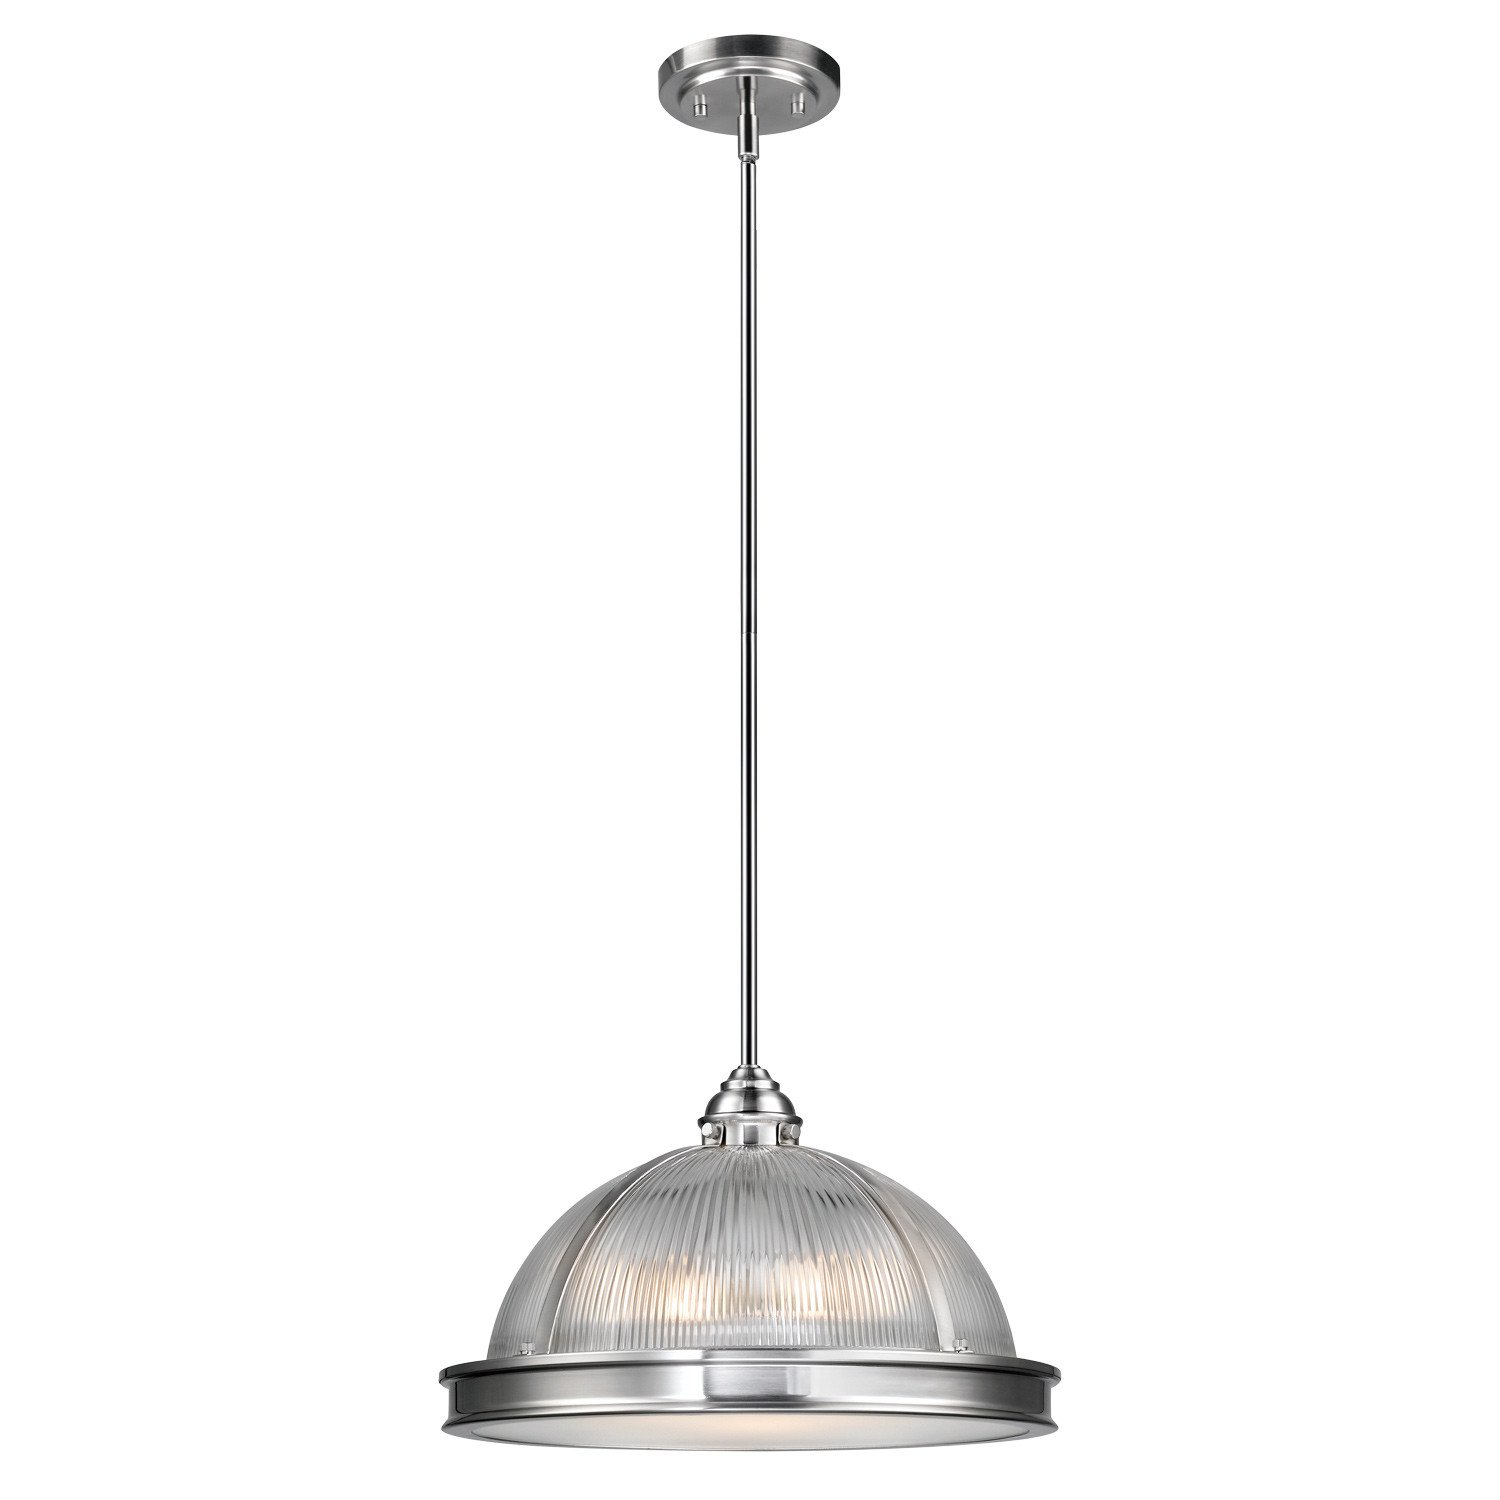 Novogratz Tarley 3-Light Hanging Pendant, Brushed Steel Finish, Clear Ribbed Glass Shade with Frosted Diffuser 65497